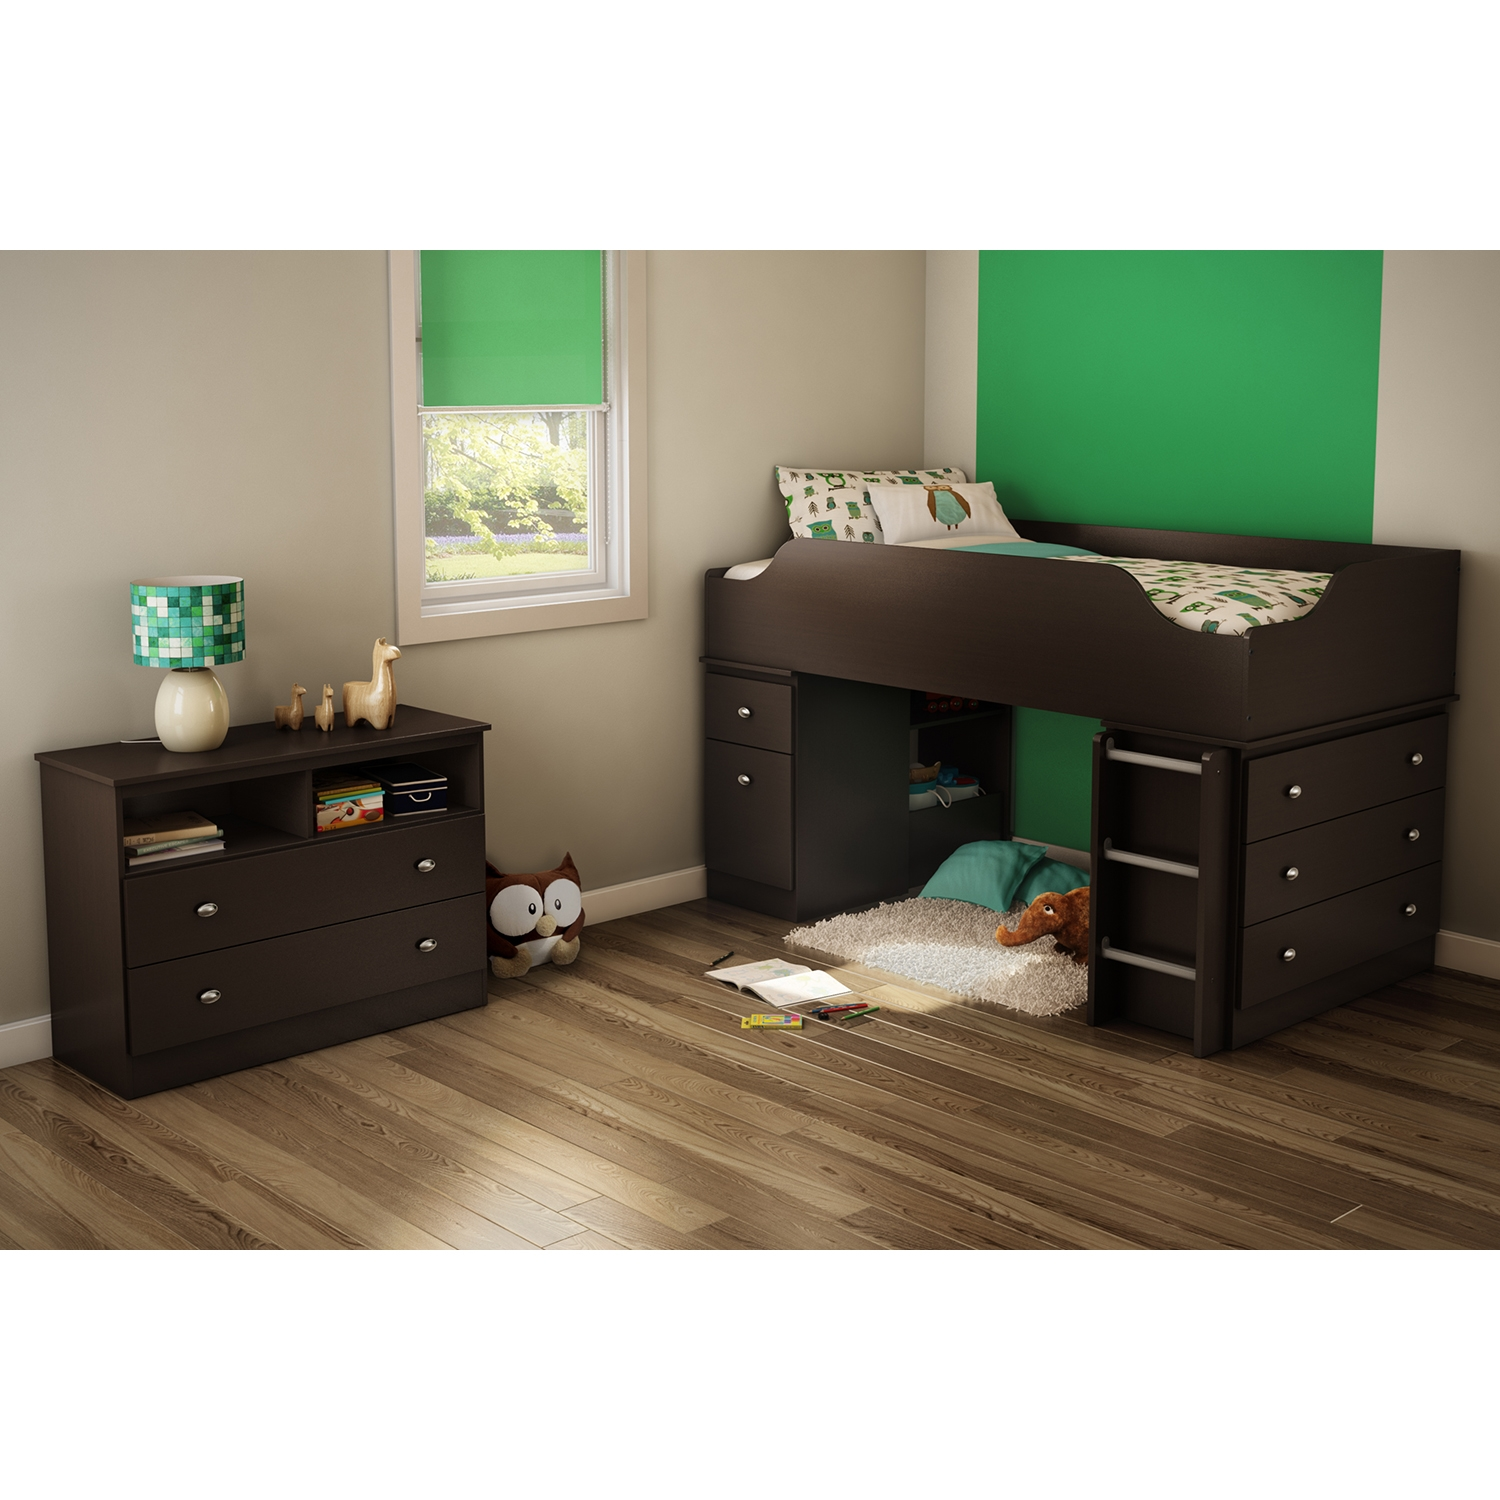 Treehouse 2 Drawers Chest - Chocolate - SS-3069043